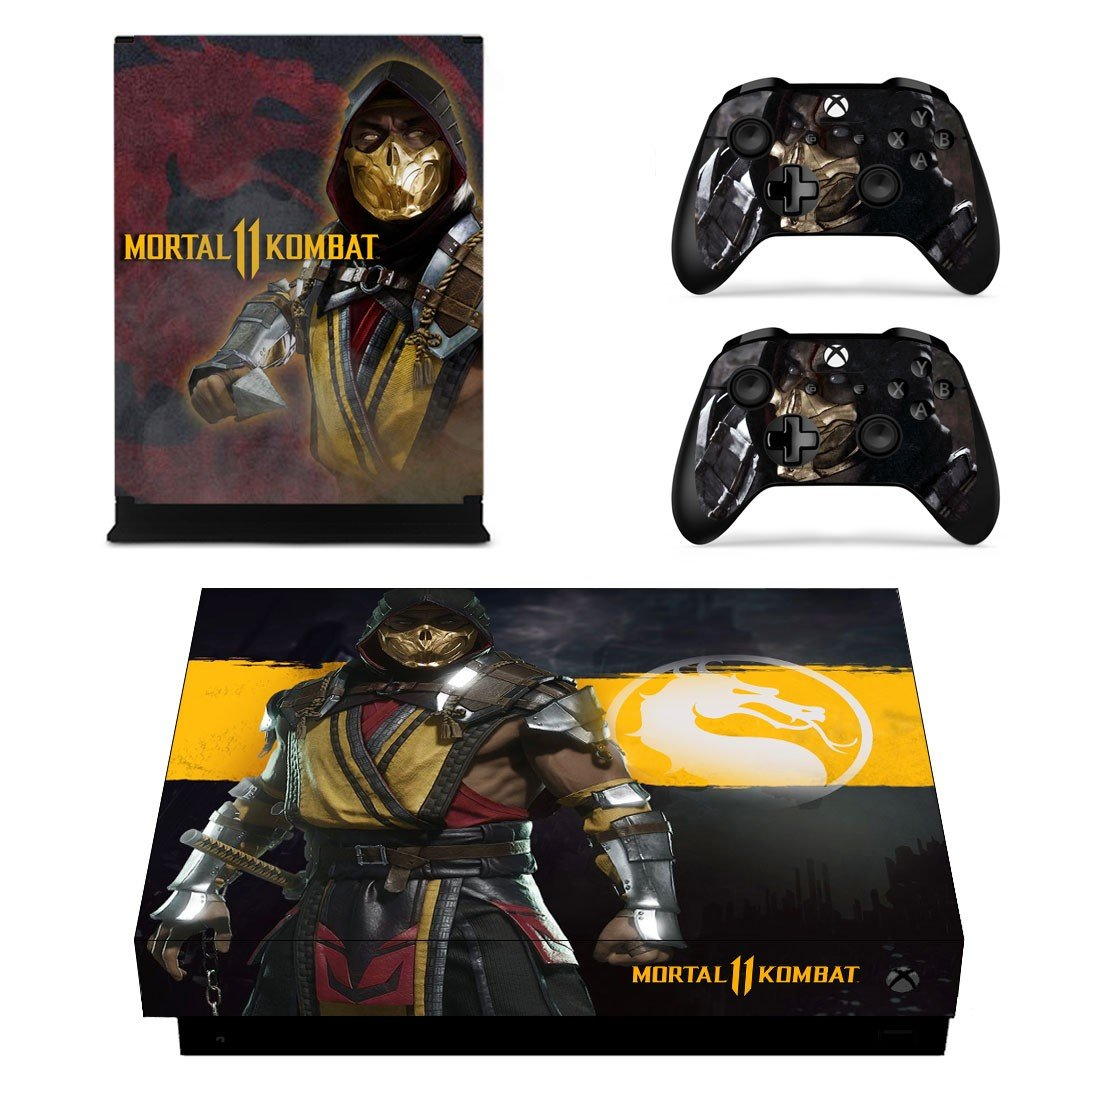 Mortal Kombat 11 skin decal for Xbox one X console and controllers